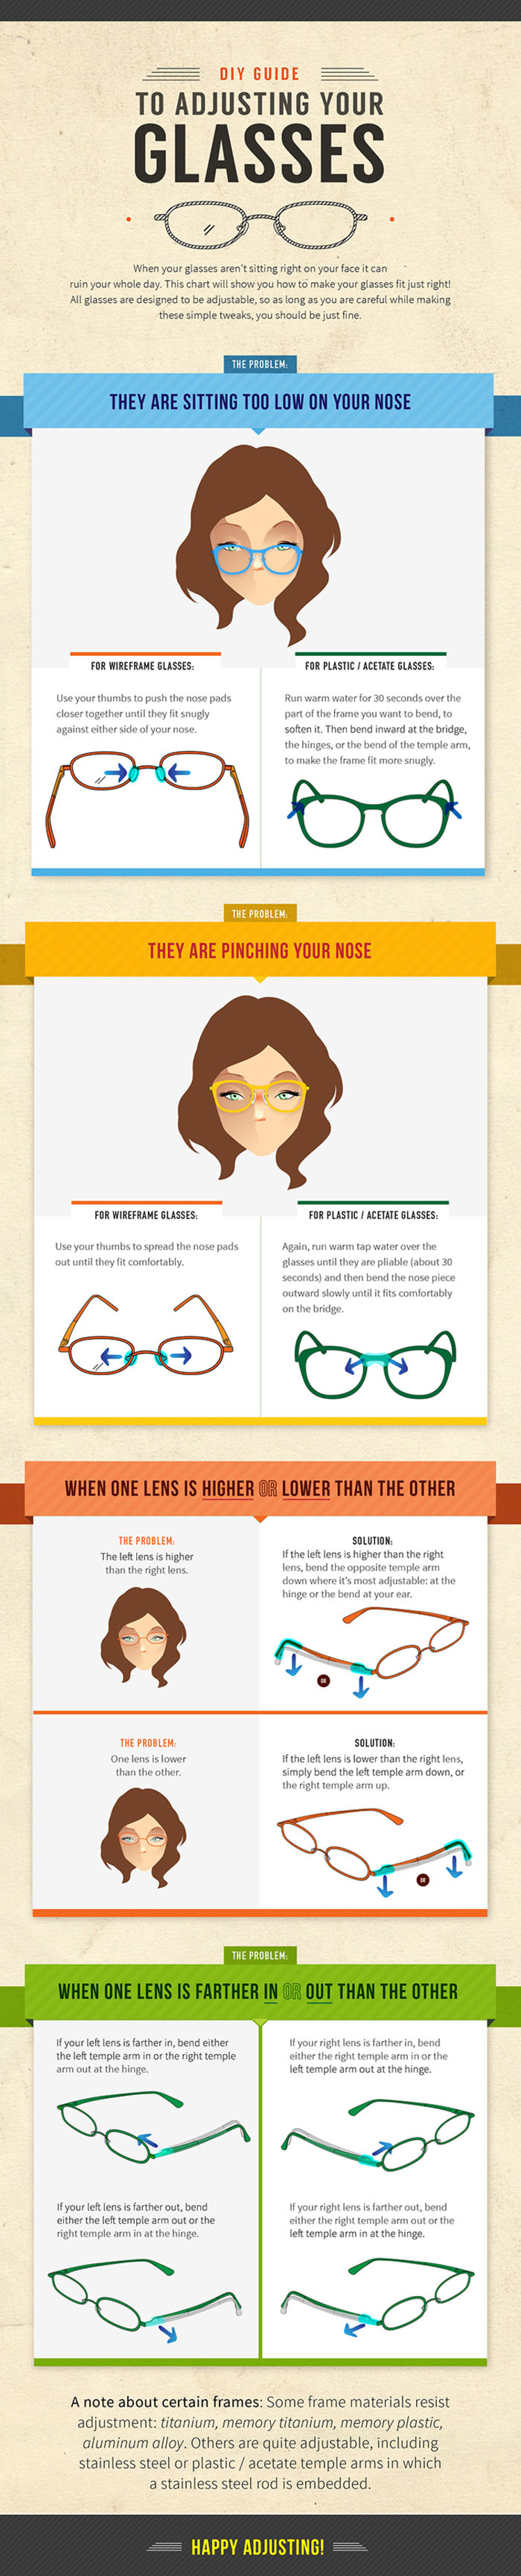 fdbbb1f1435 How To Adjust Your Glasses Infographic by Cheatography  http   www.cheatography.